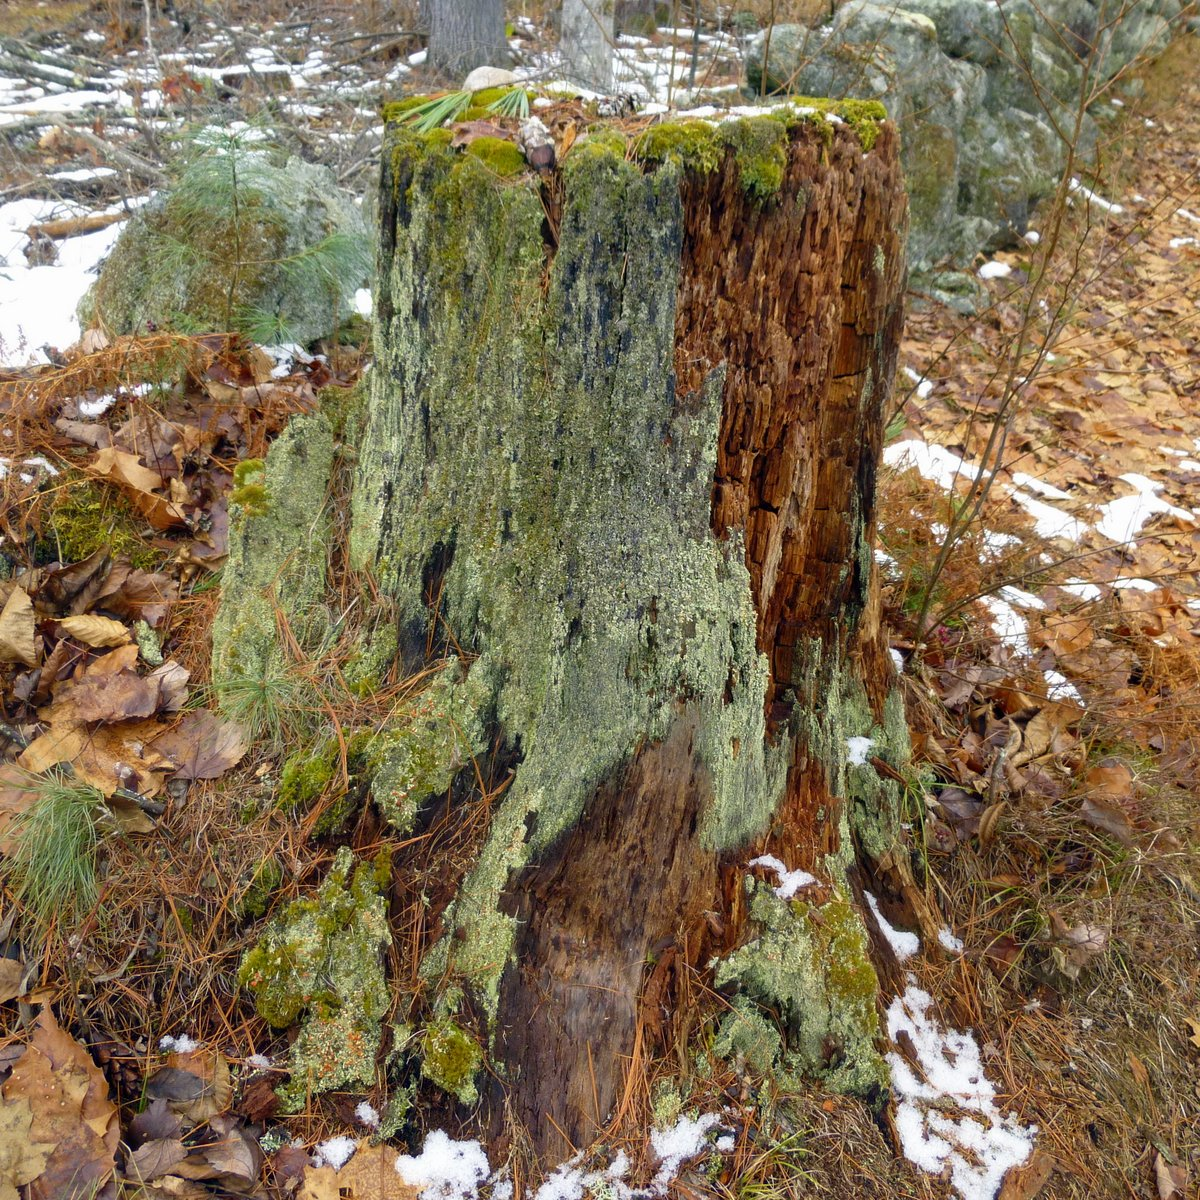 15. White Pine Stump